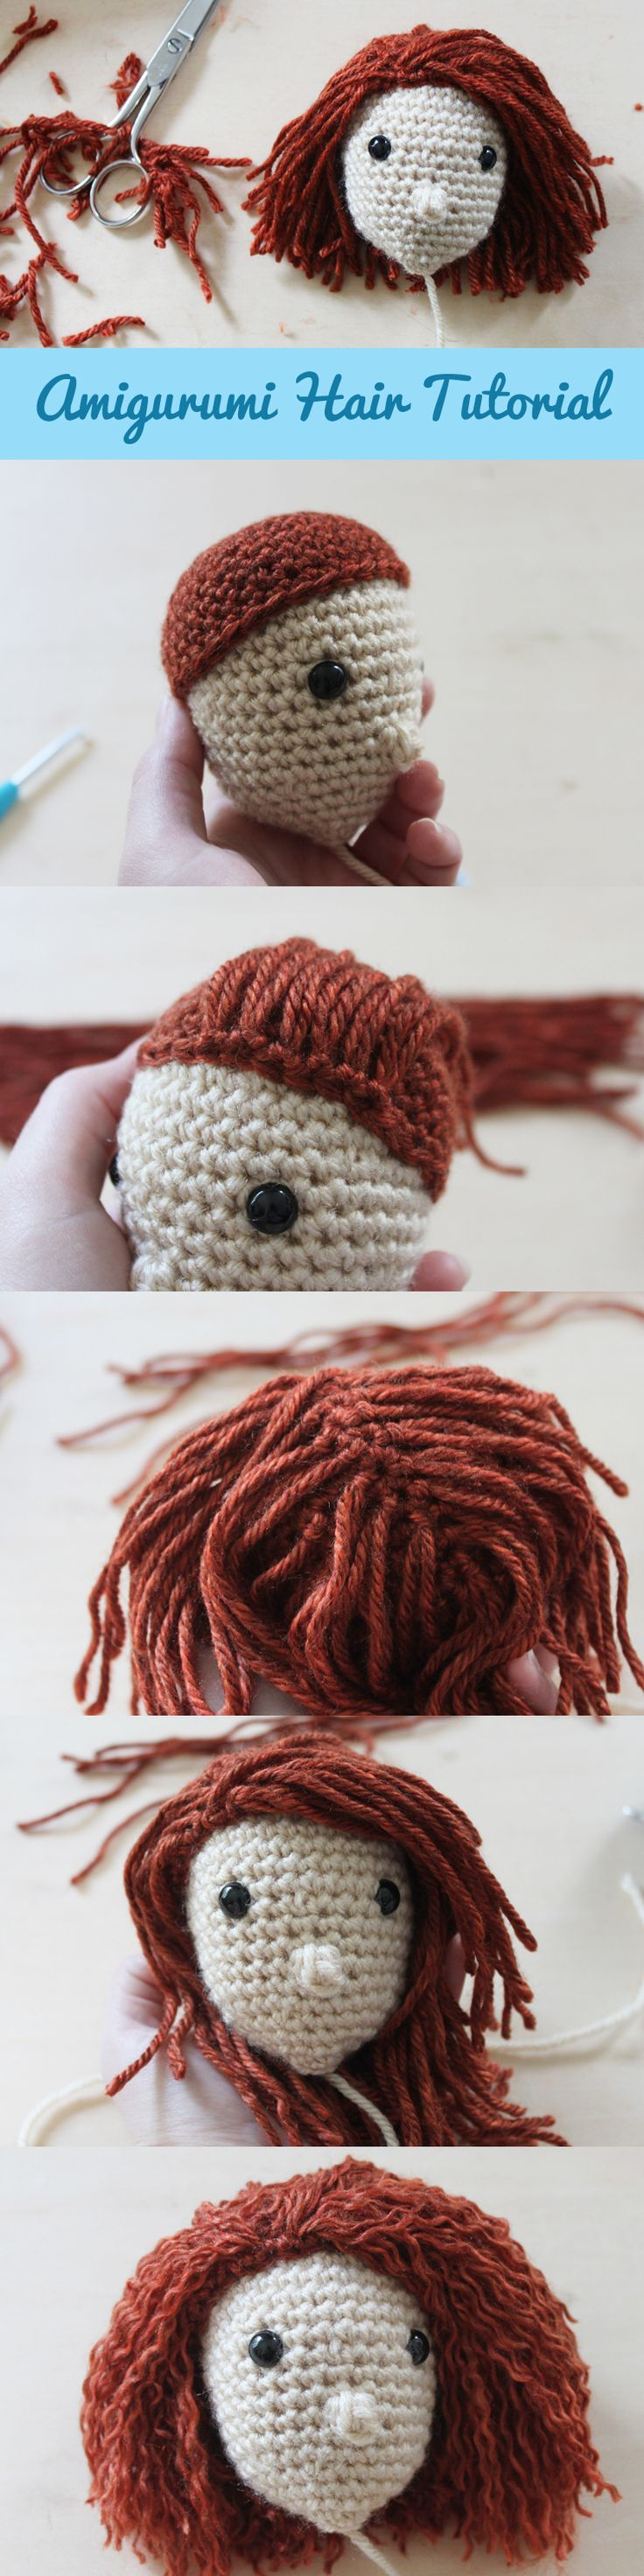 Amigurumi hair tutorial - step by step photos to add ...